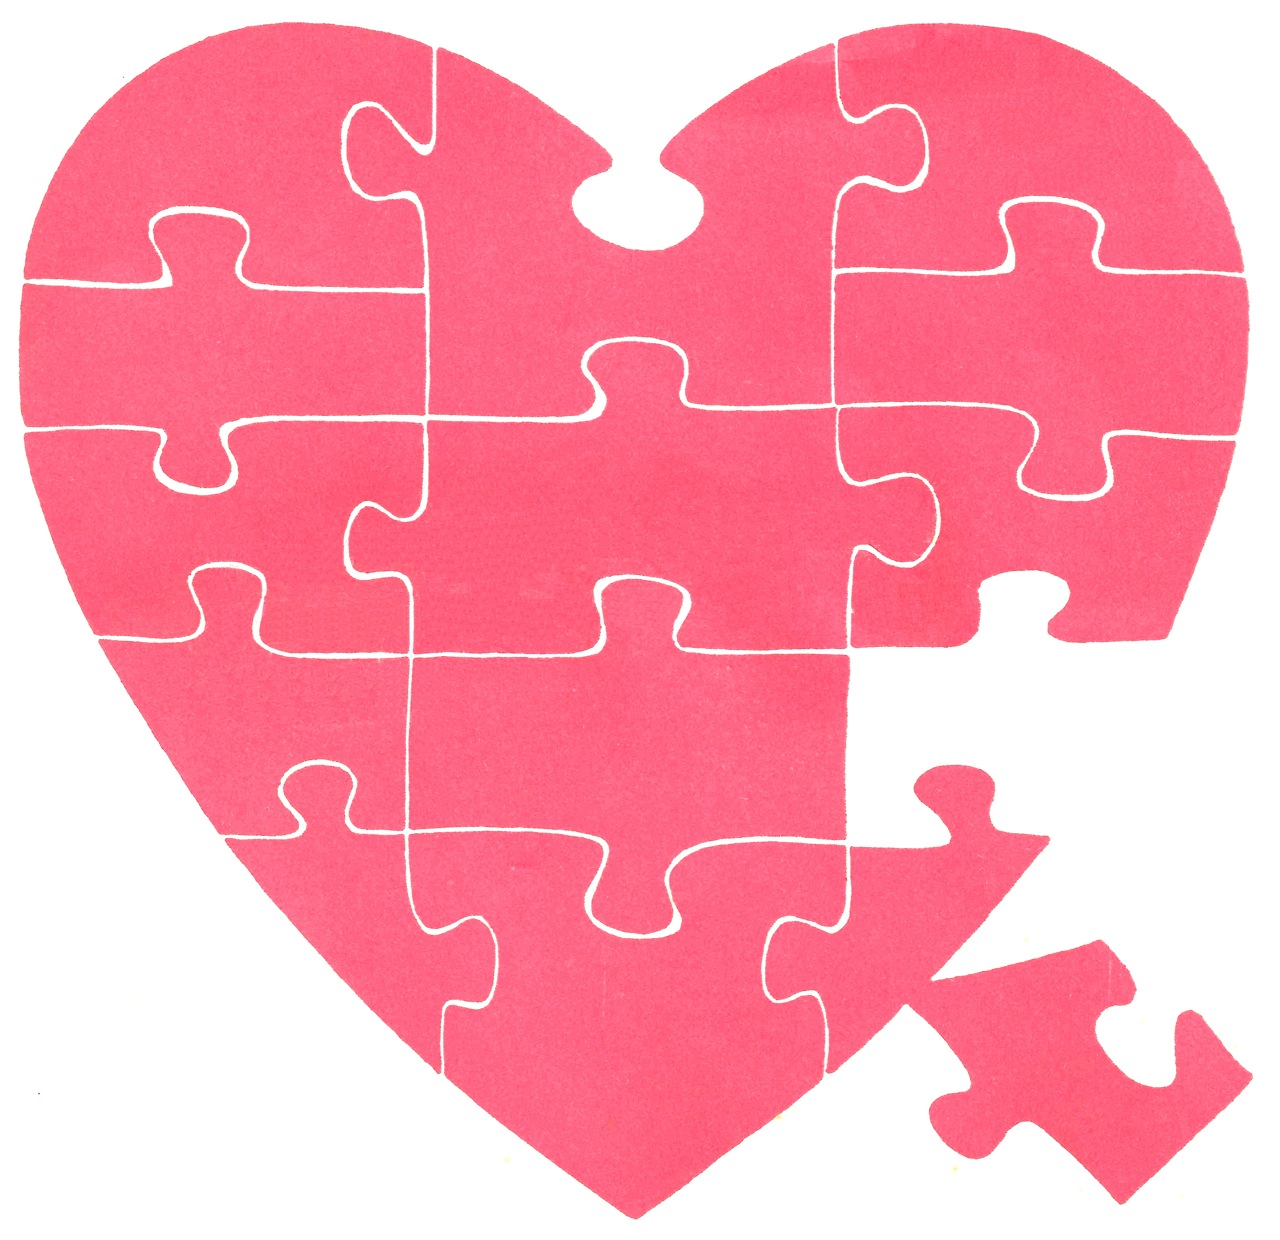 Vintage Jigsaw Puzzle Heart | It's my cake